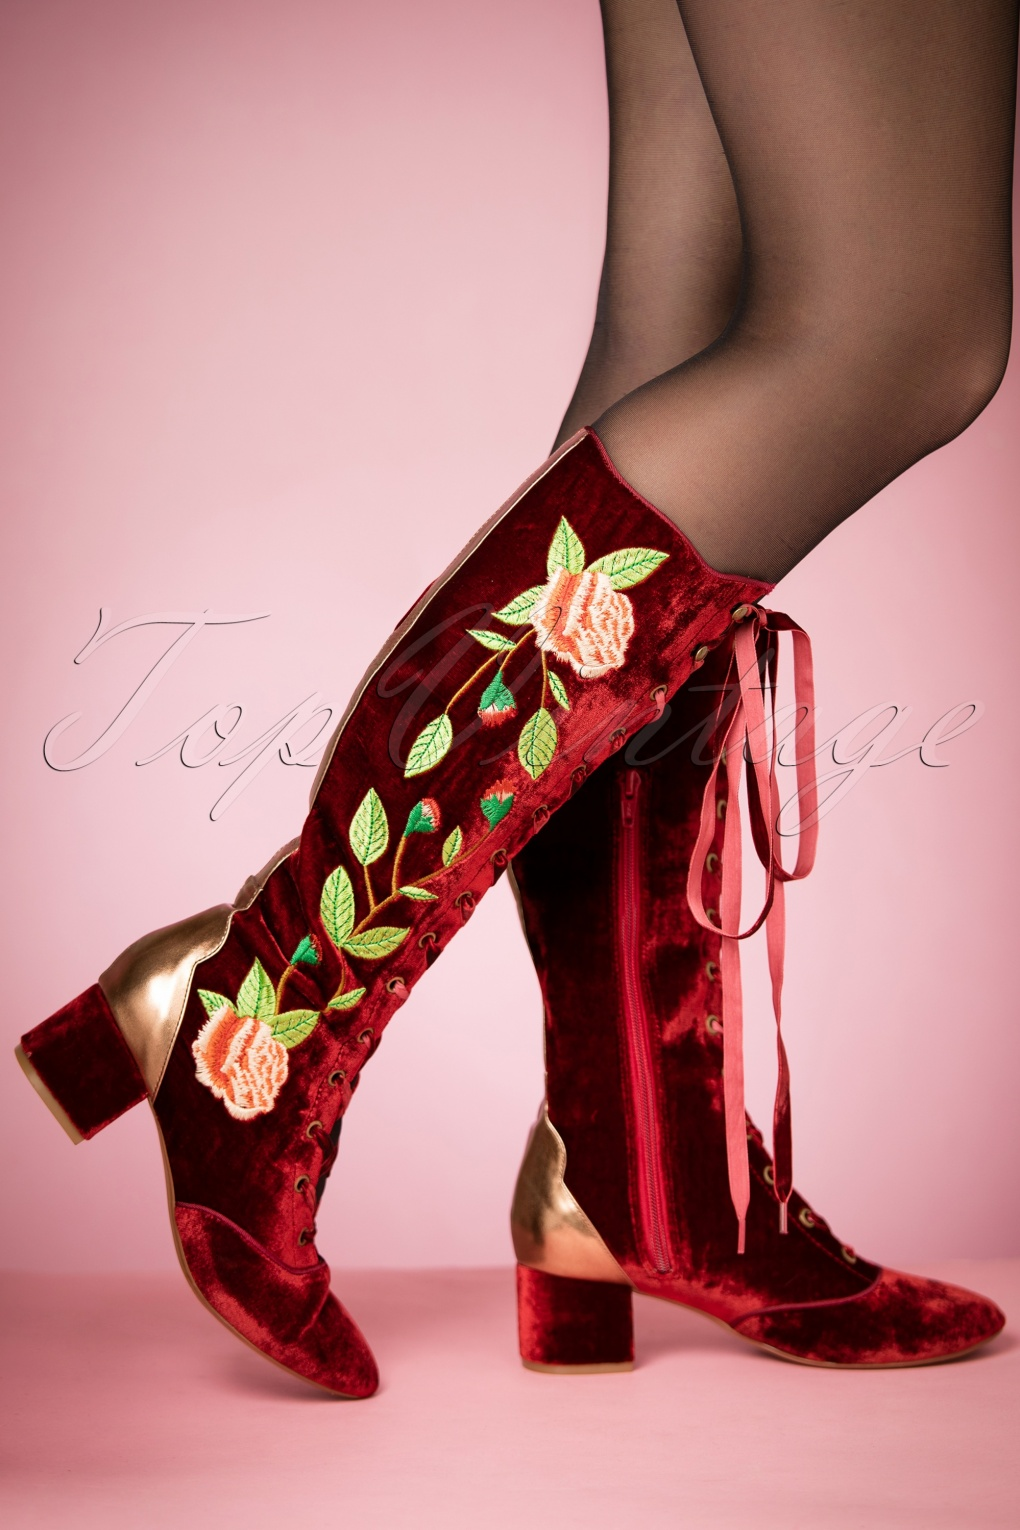 Vintage Style Boots, Retro Boots, Granny Boots, Fur Top Boots 30s Sasha Floral Lace-Up Boots in Rusty Red Velvet £126.28 AT vintagedancer.com